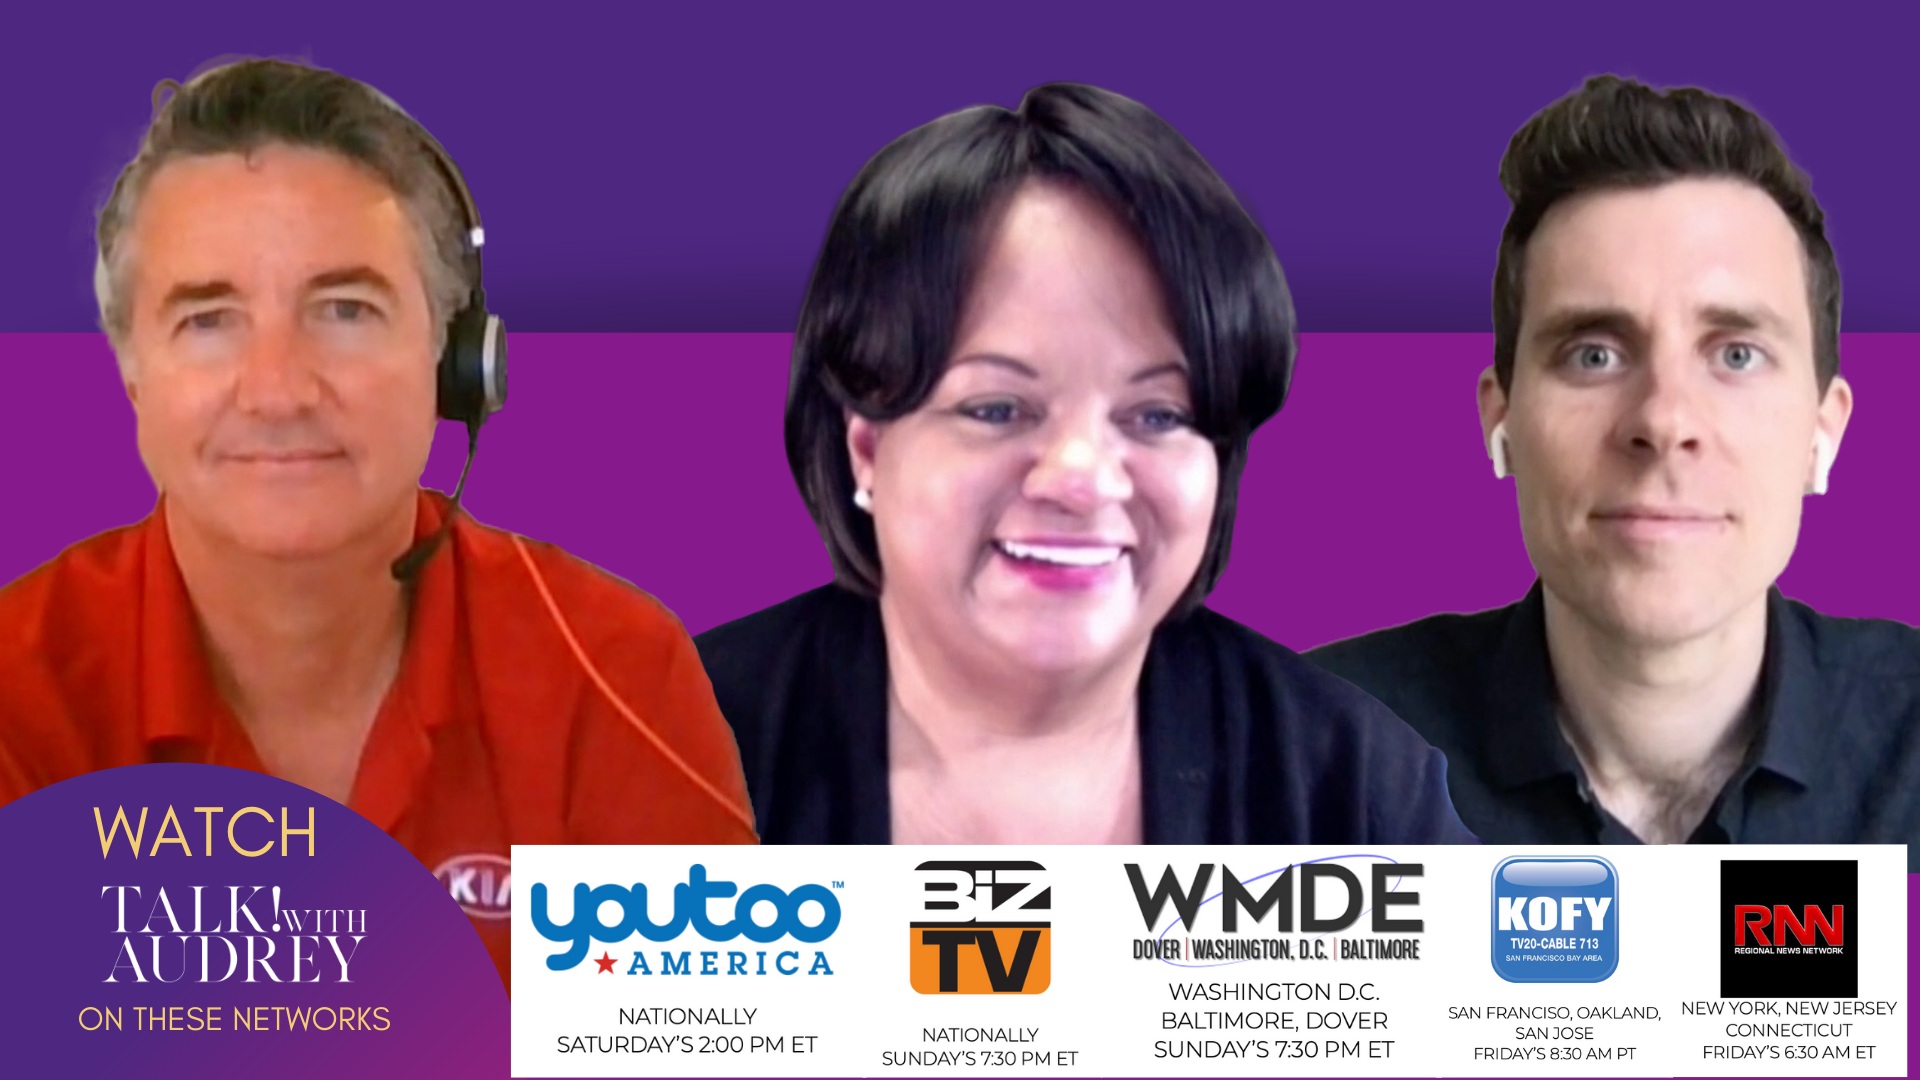 May 1-3, 2020 – TALK! with AUDREY TV